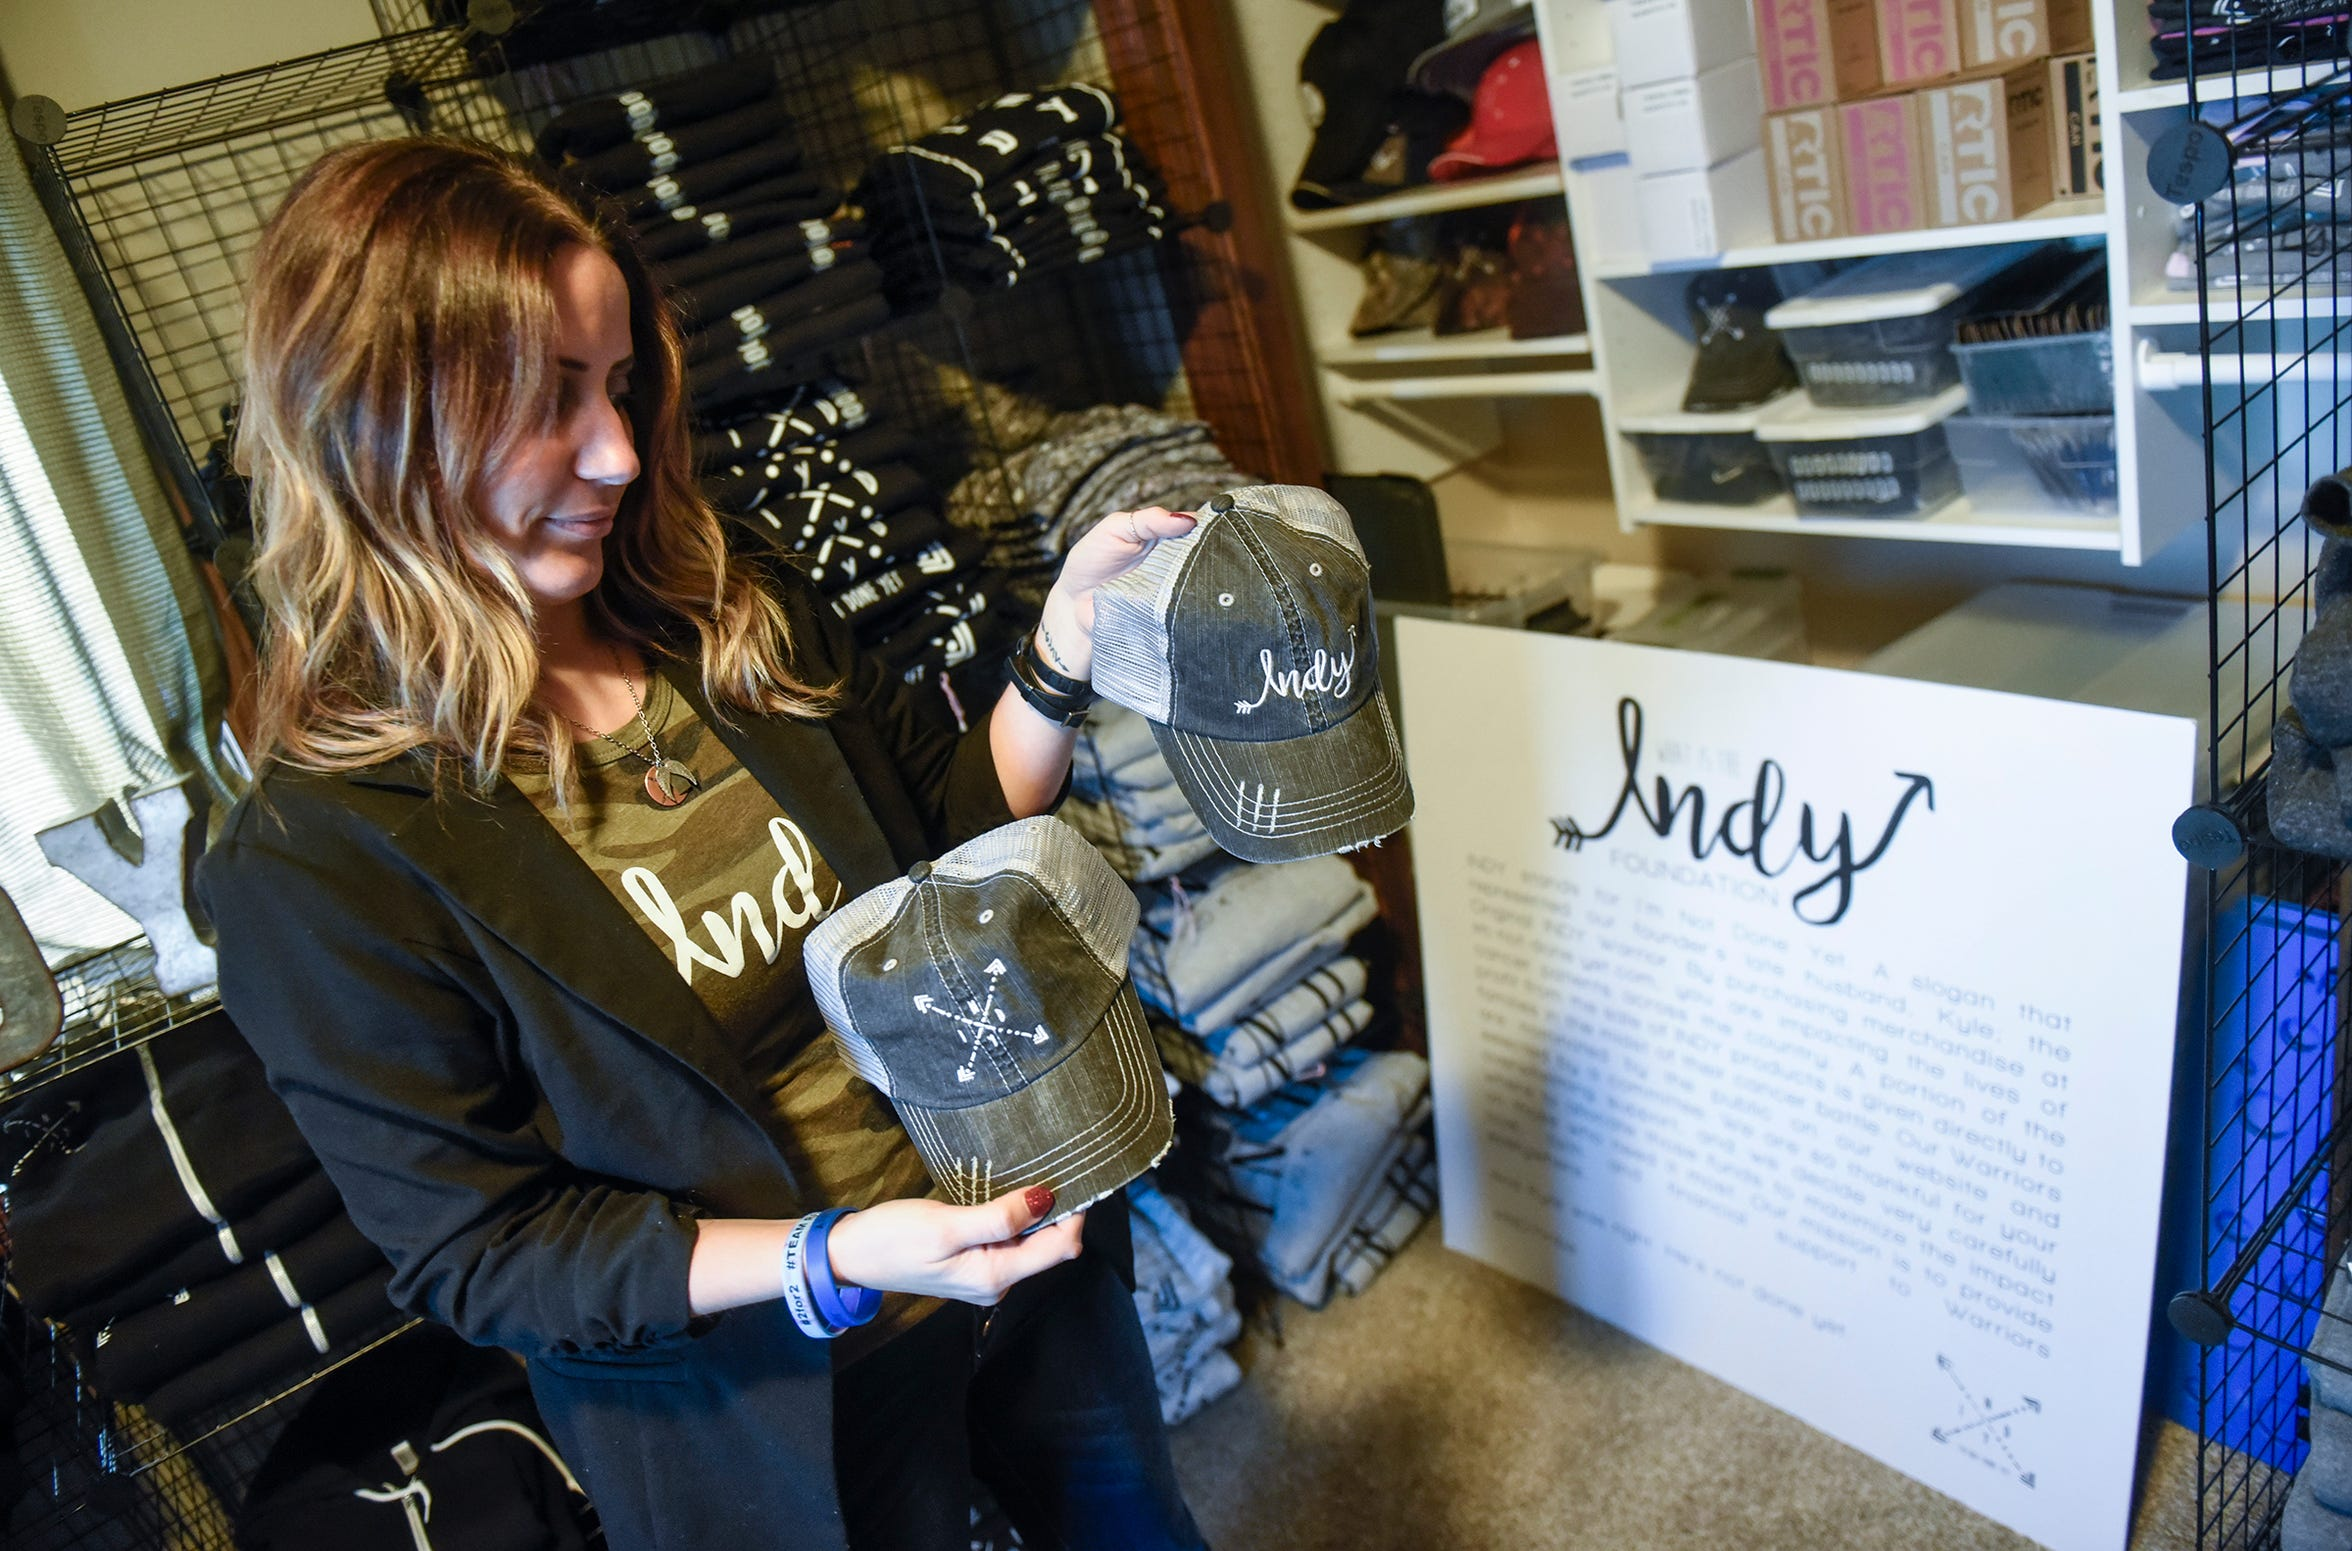 INDY Foundation founder Kayla Strand holds items sold to support the work of the foundation during an interview Thursday, Dec. 13, at her home.